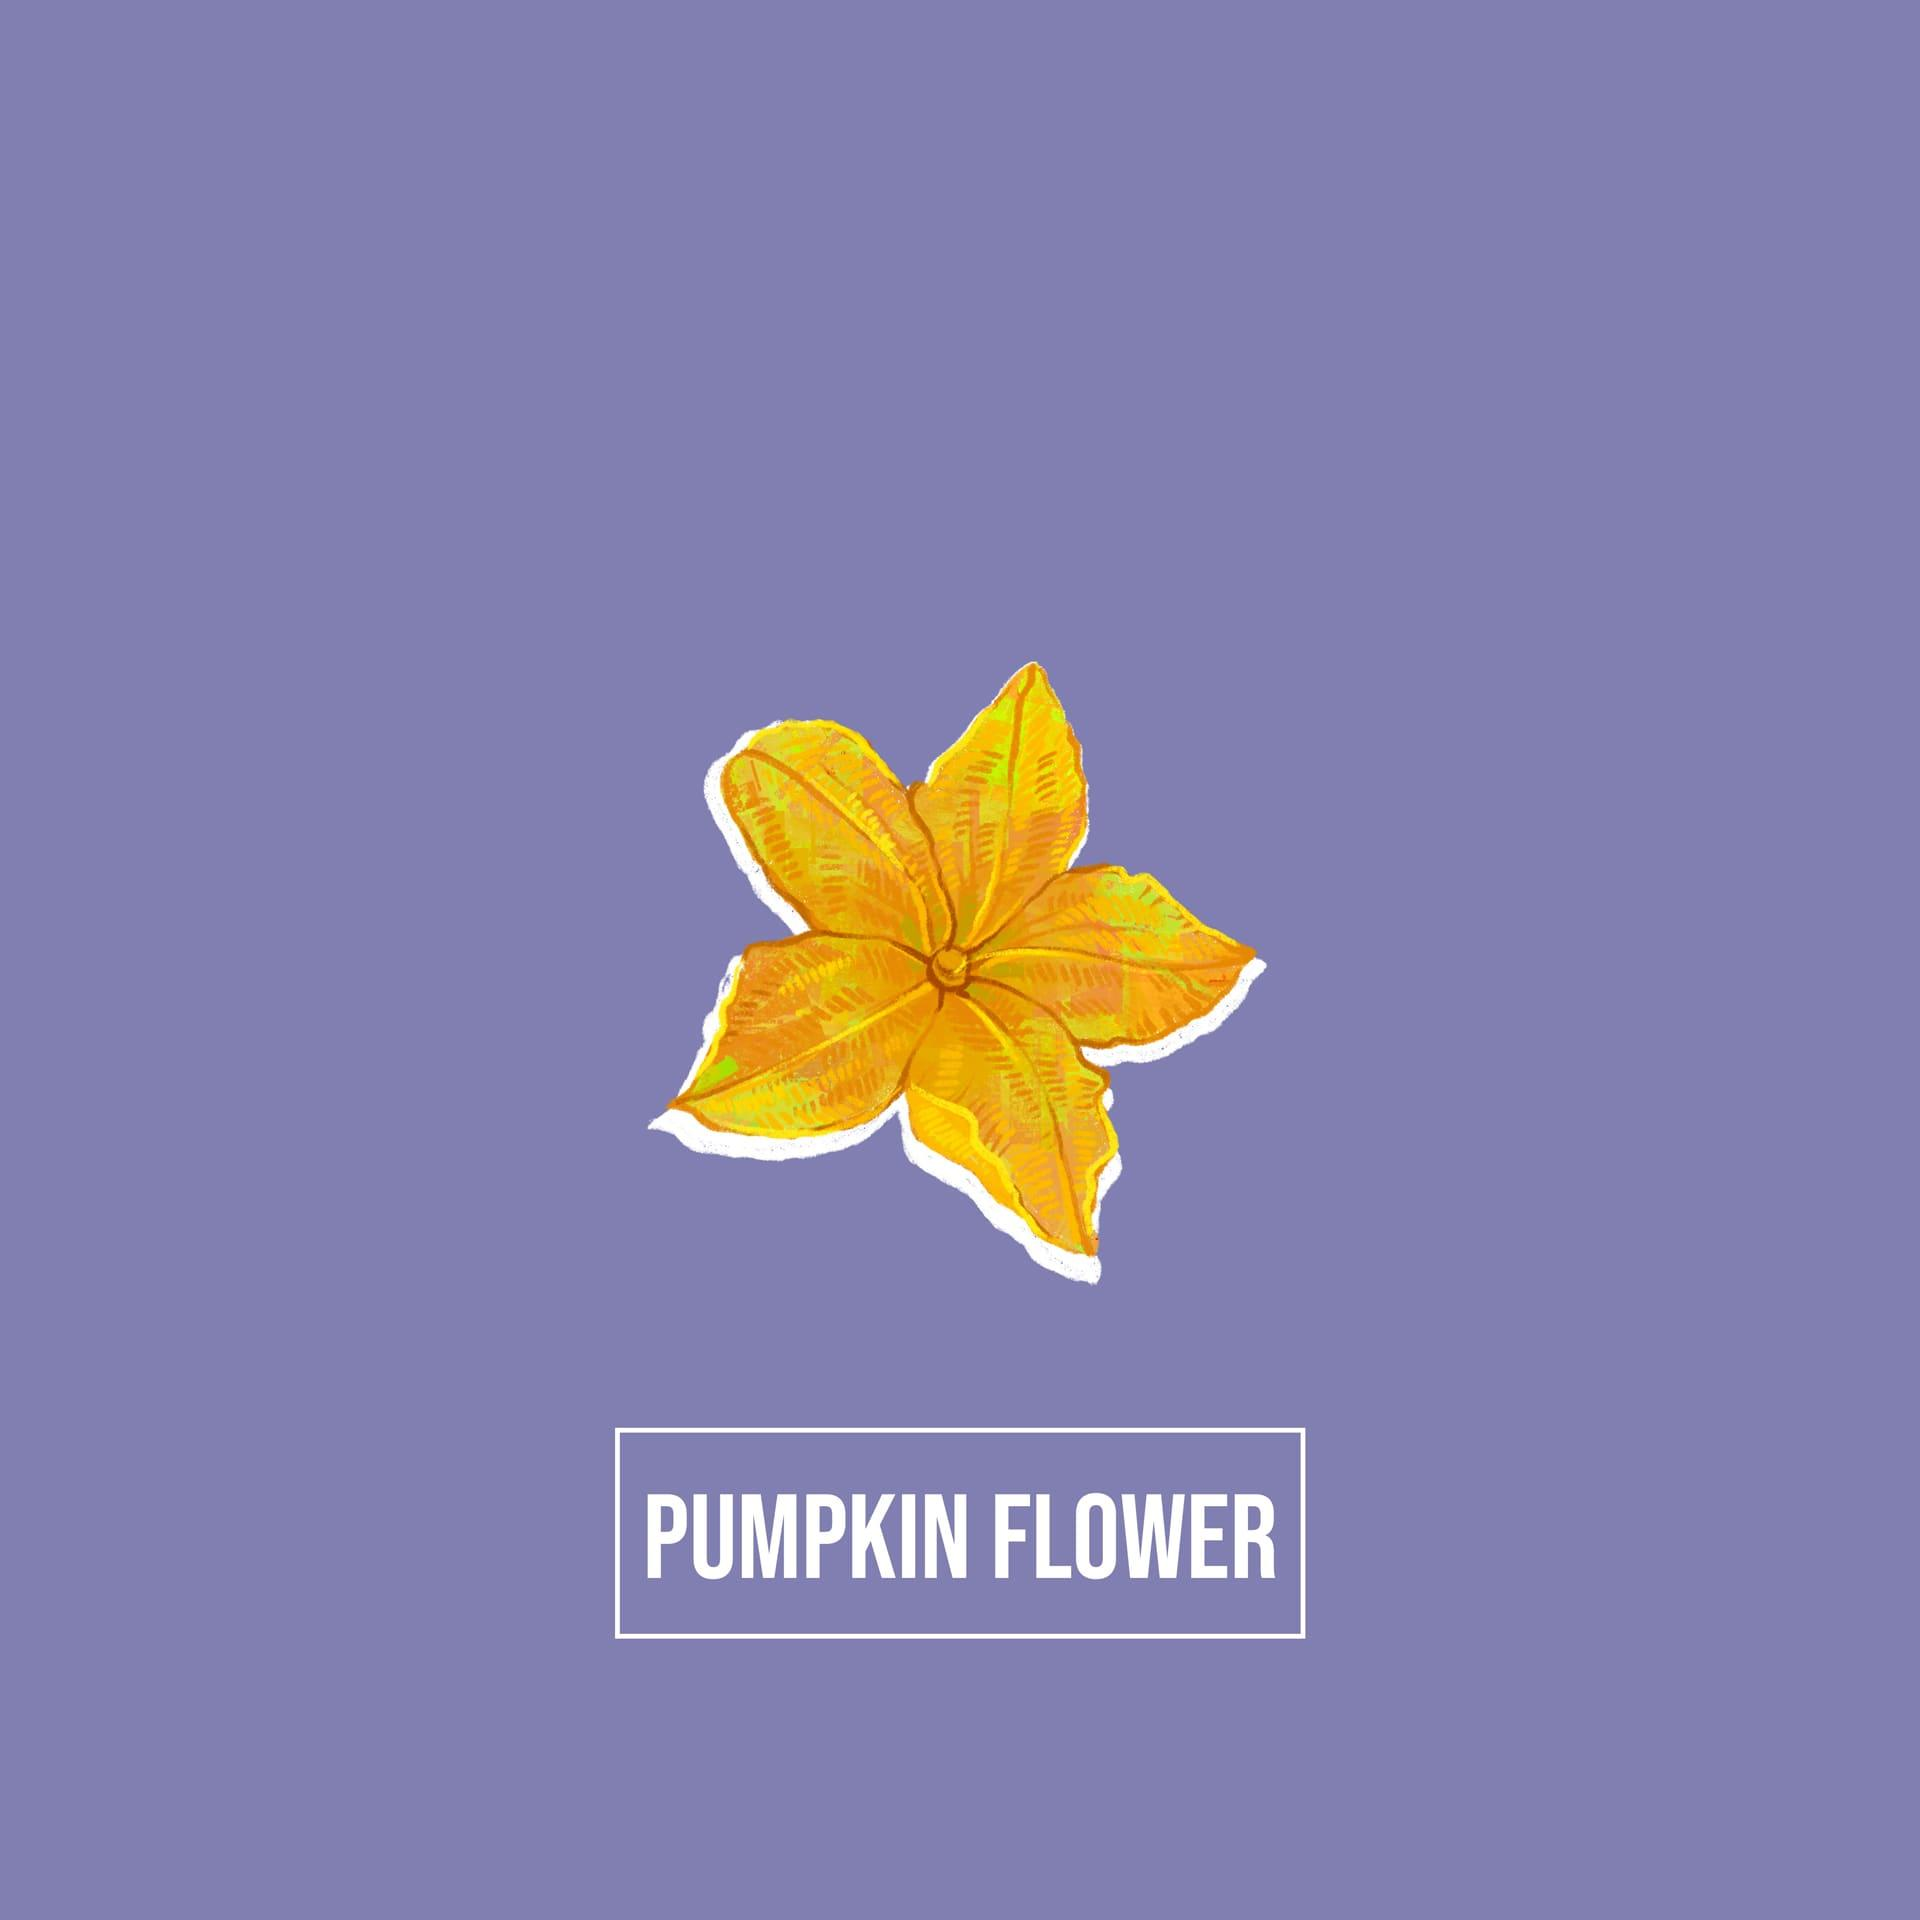 Indian biodiversity - pumpkin flower - Akash Muralidharan